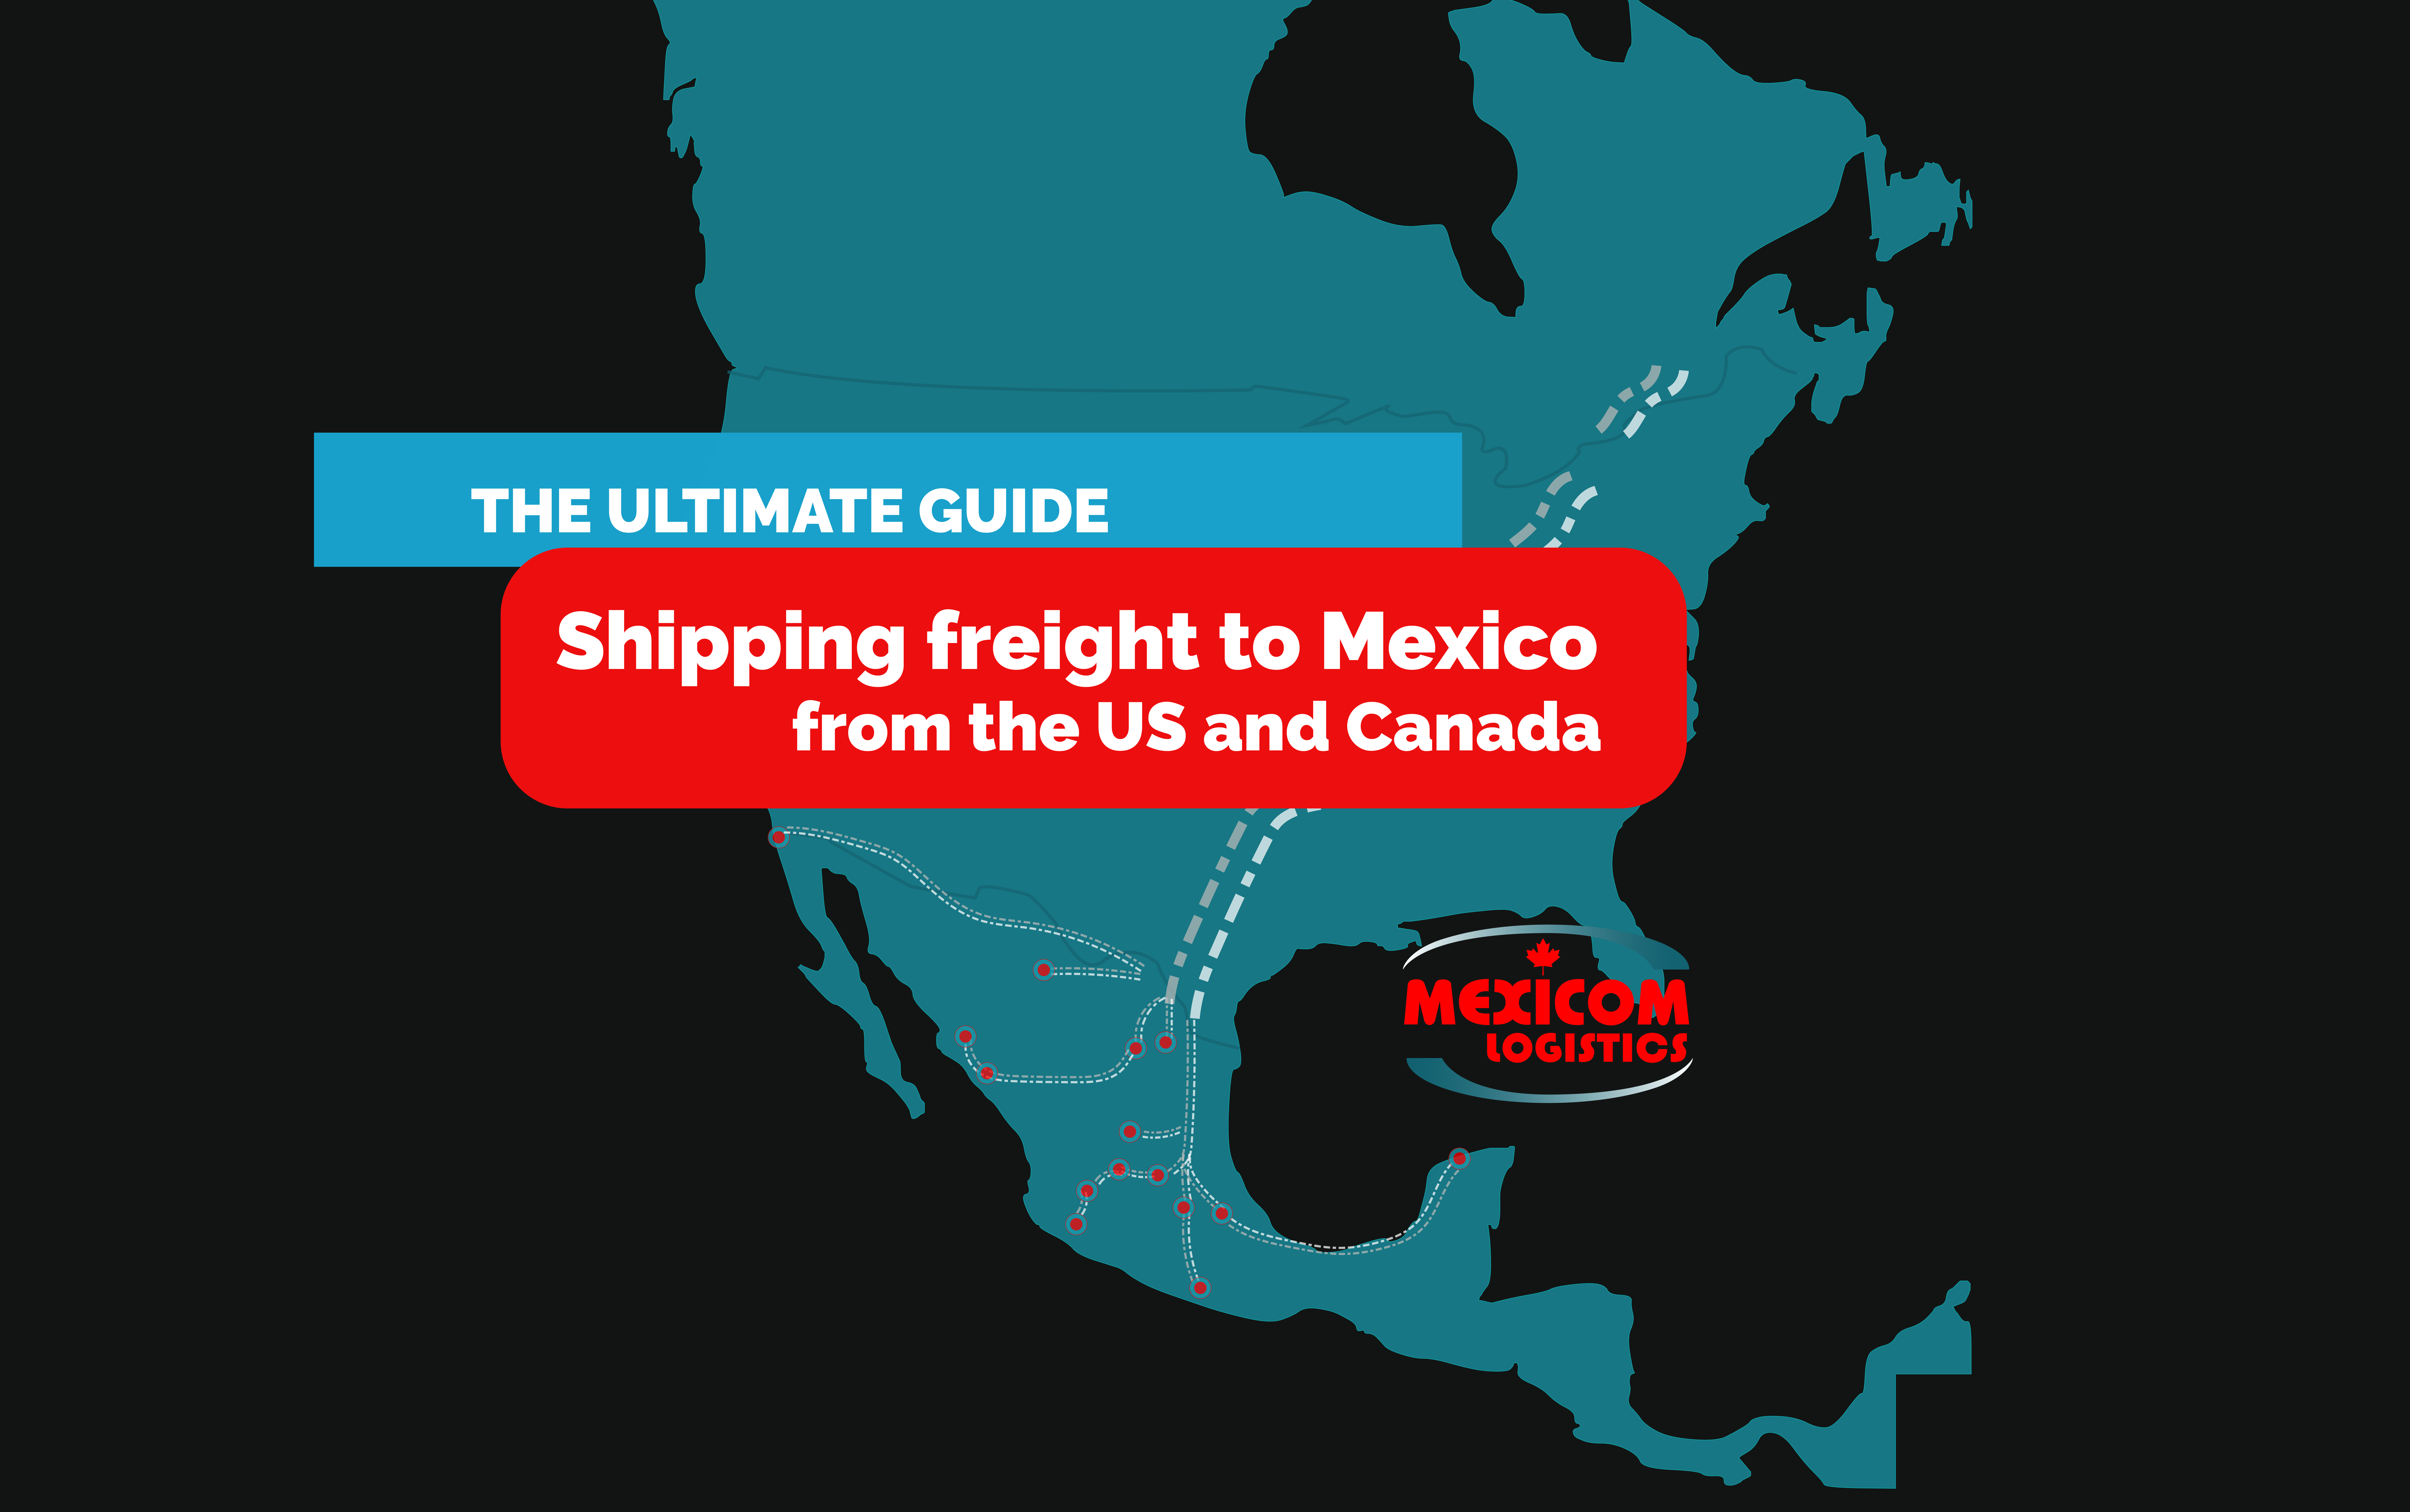 The ultimate guide shipping freight to Mexico from the US